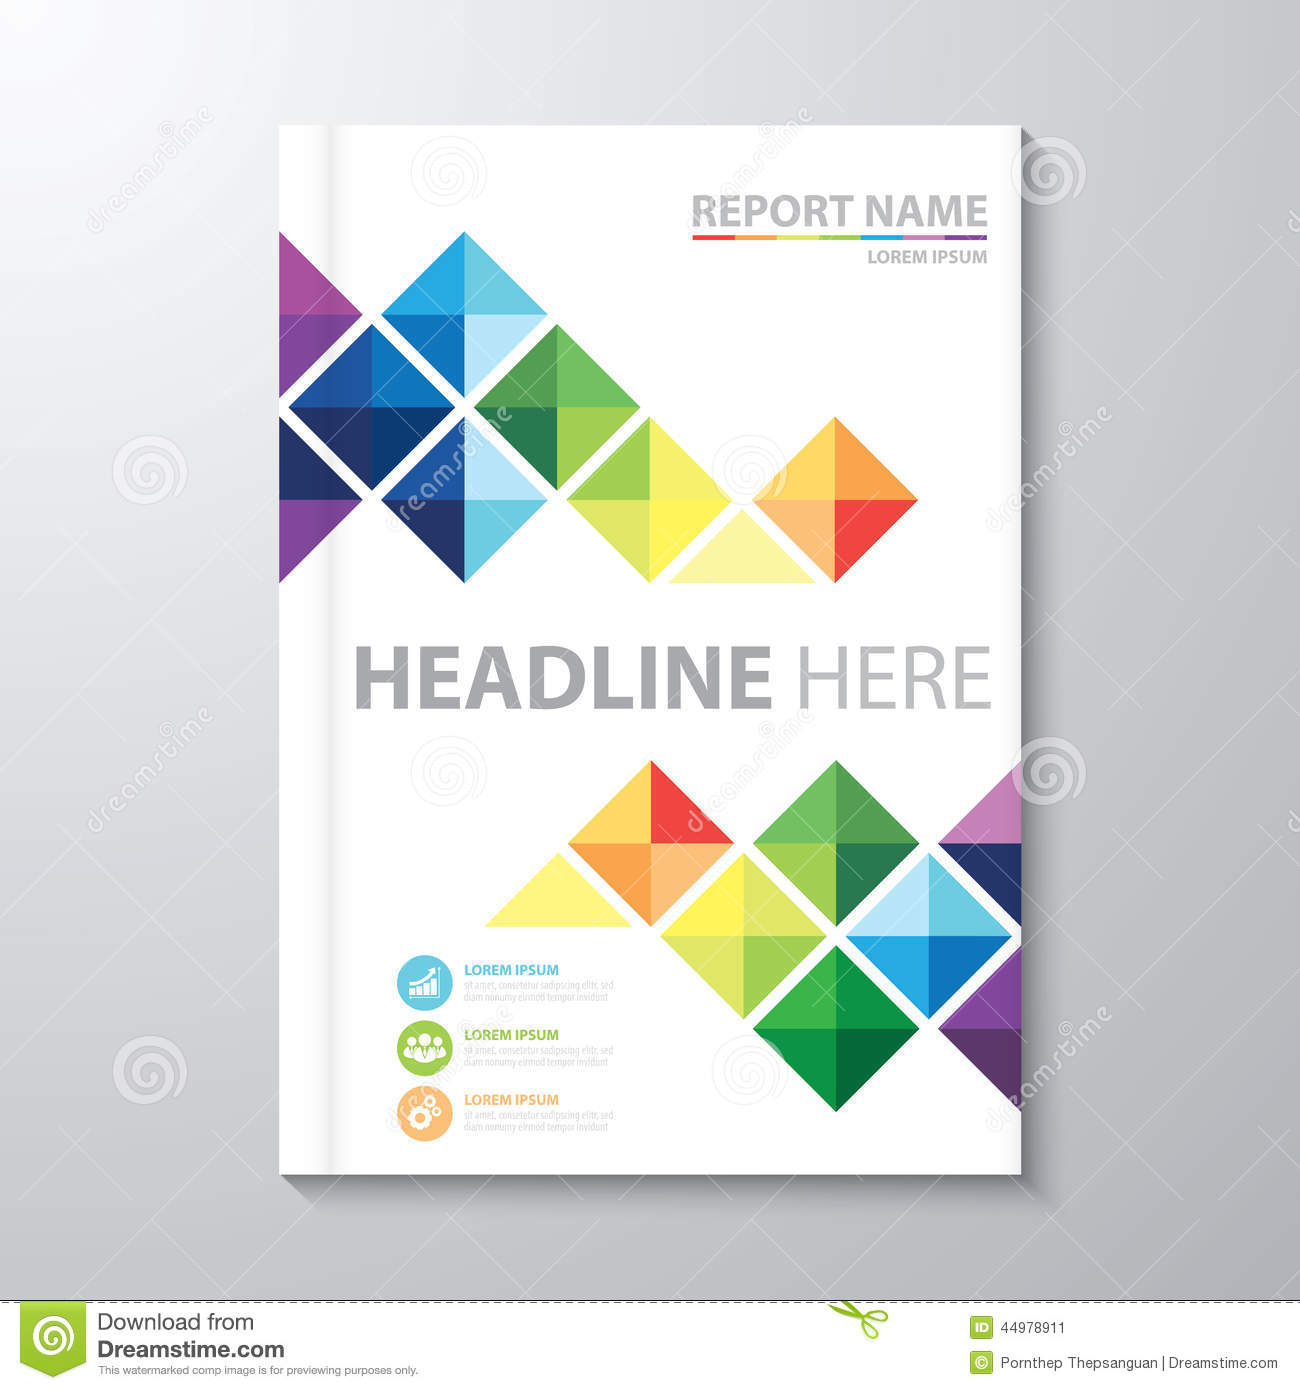 annual report template word template report cover page template word annual report template word